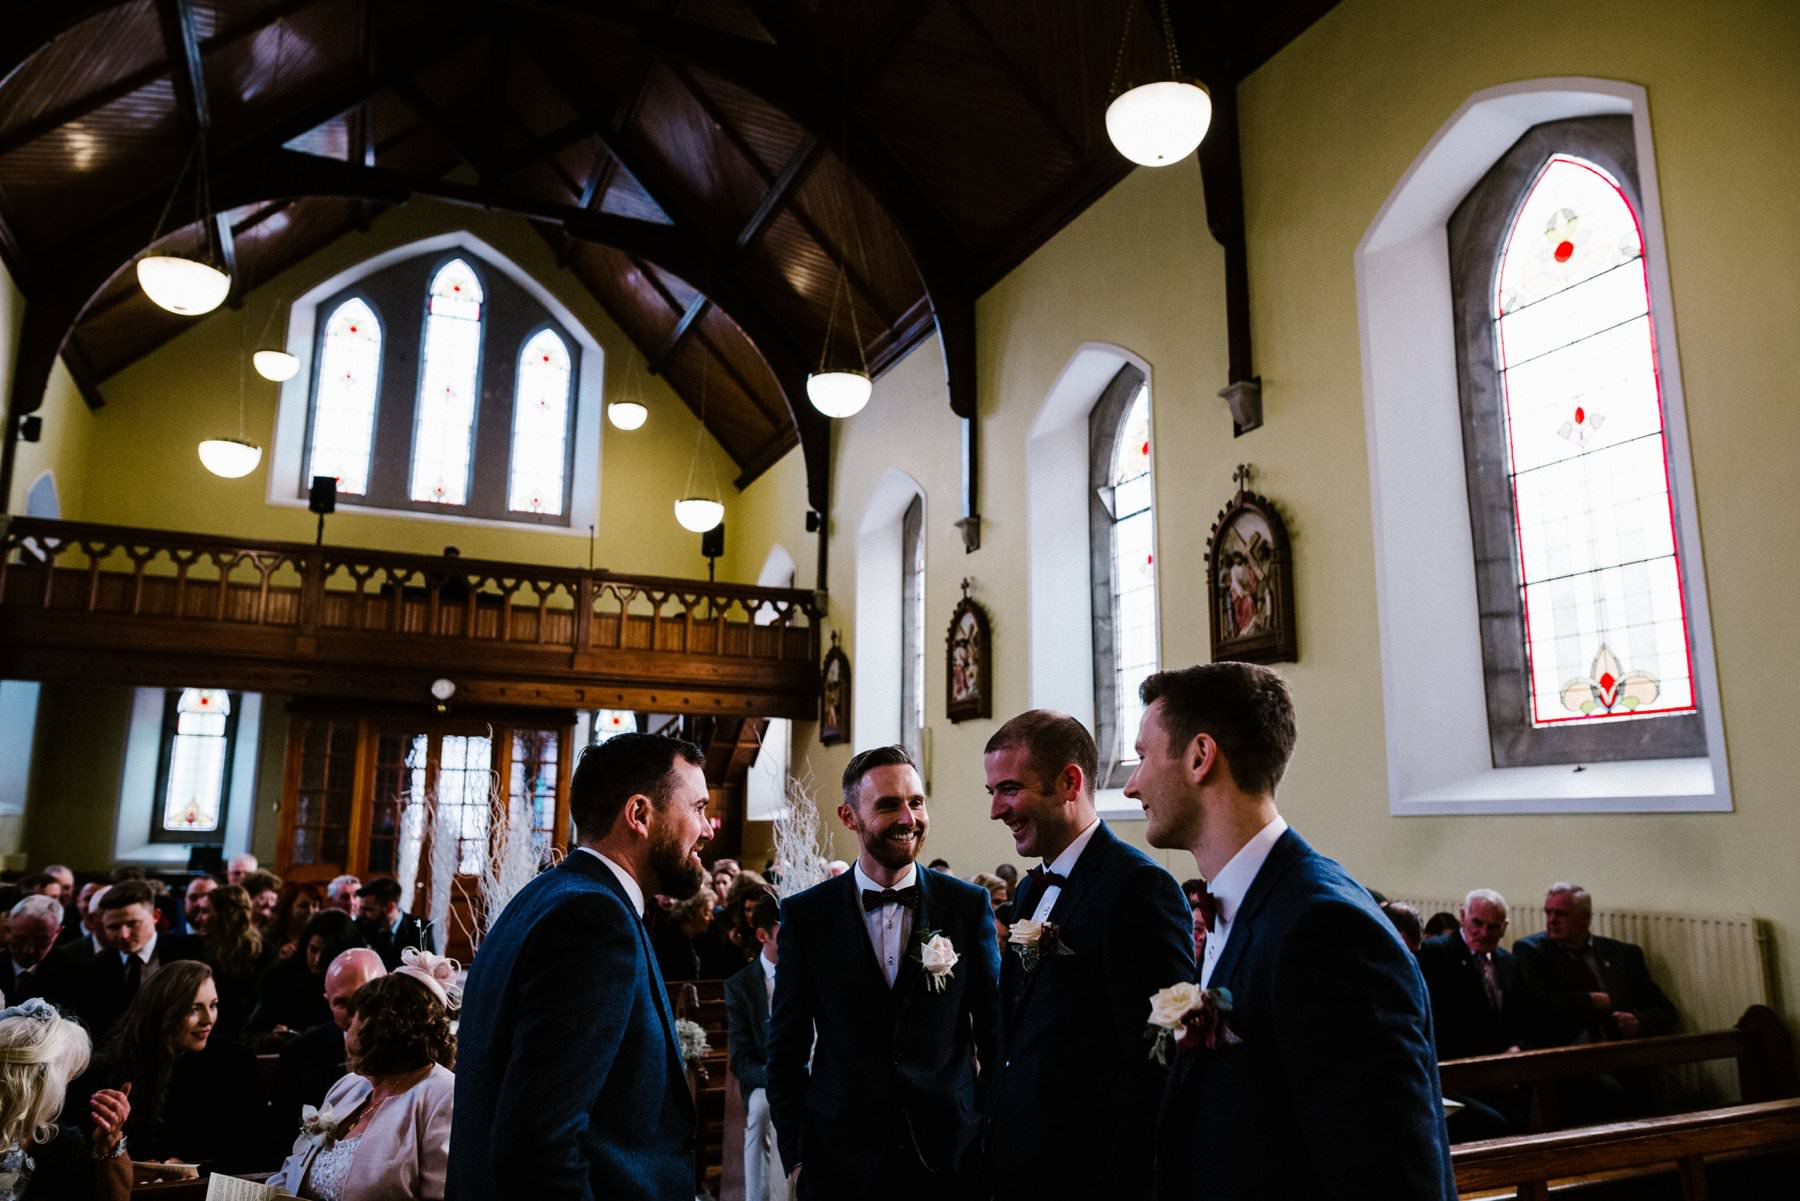 groom waiting with groomsmen at front of church wedding photographer ireland